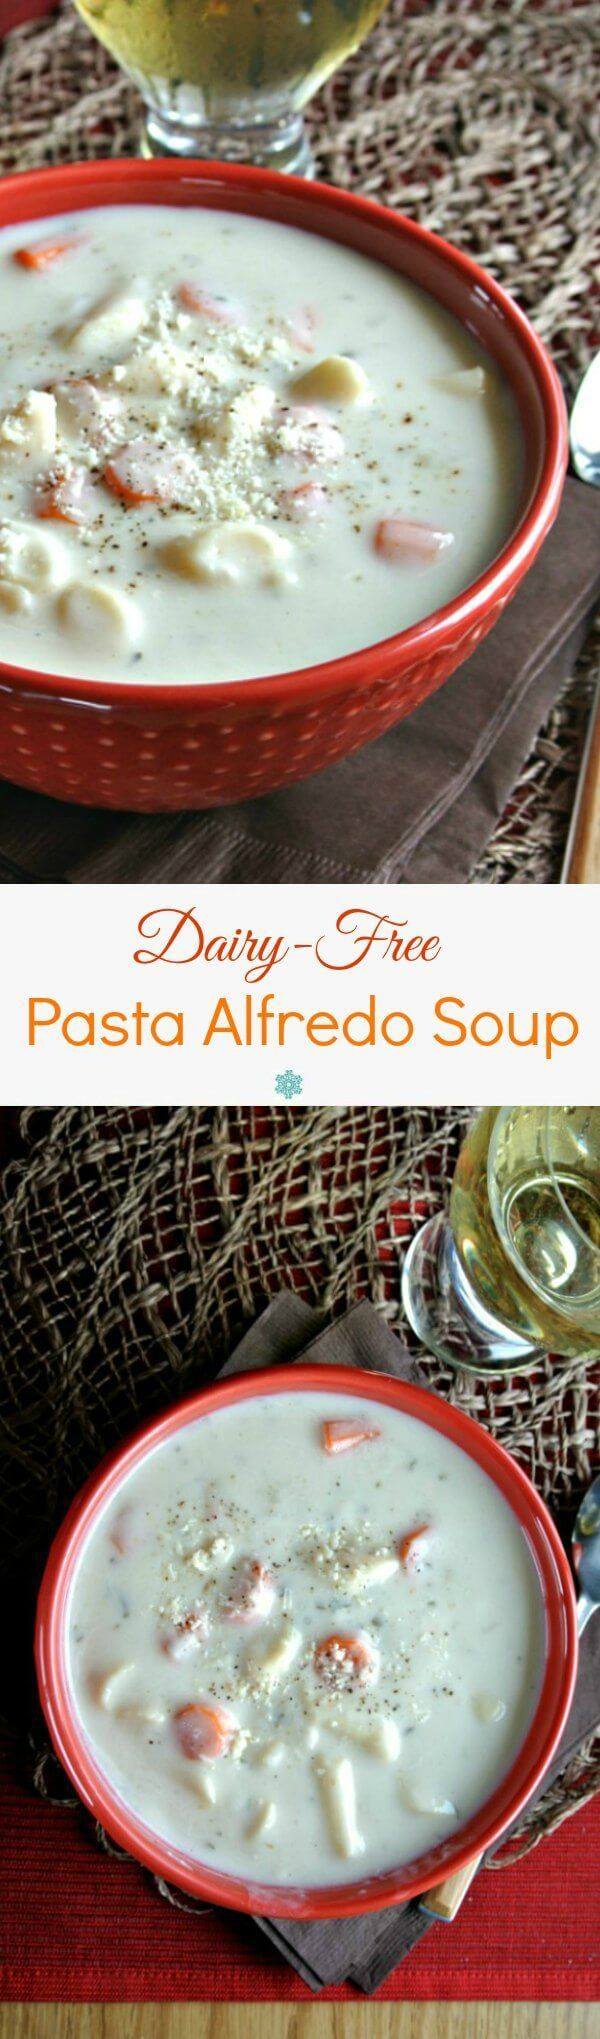 Dairy-Free Pasta Alfredo Soup has all the flavors of the famous pasta dish but it is completely dairy-free. Fast, easy and memorable. @lovemysilk #DoPlants